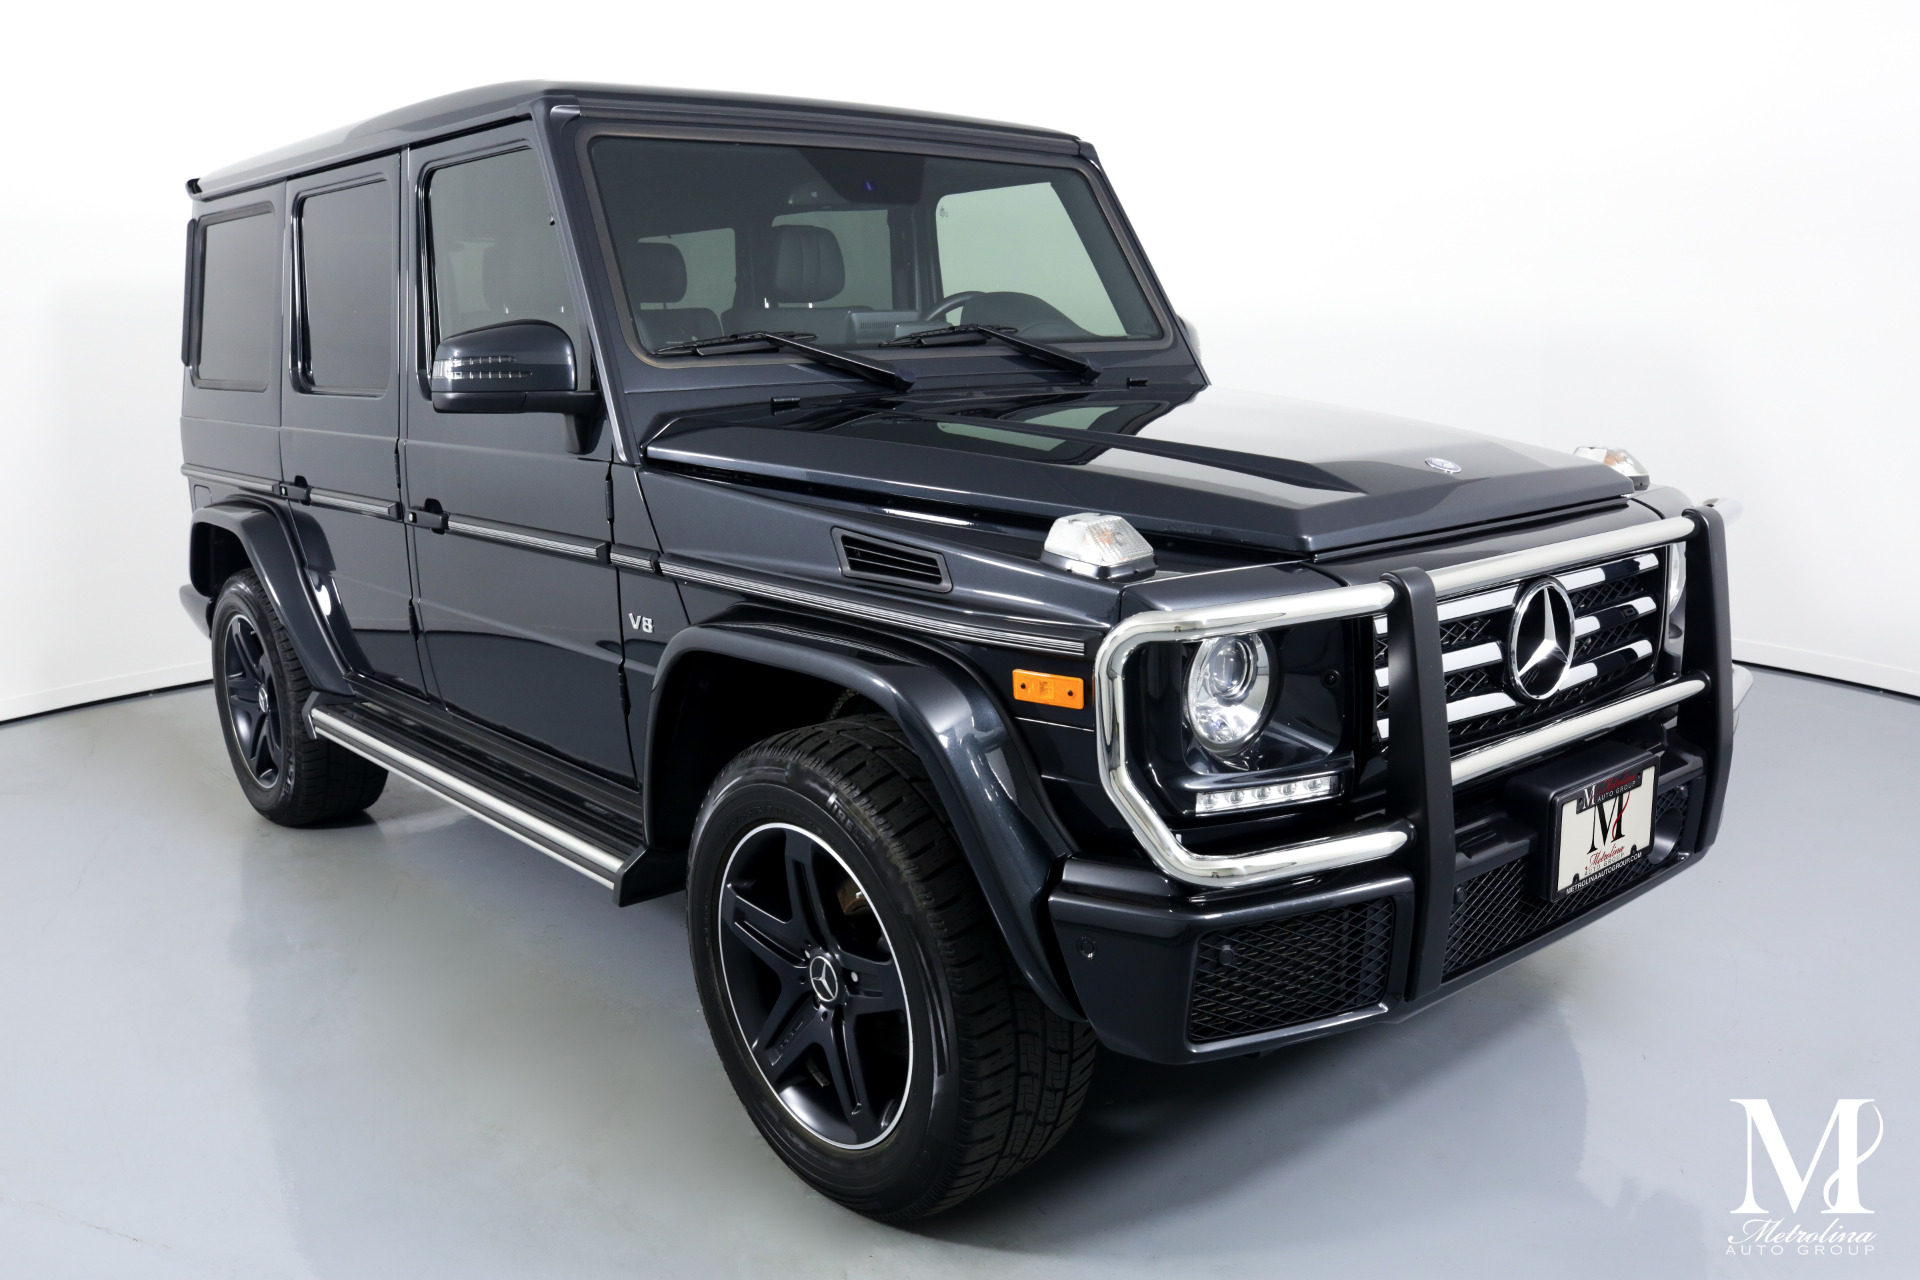 Used 2017 Mercedes-Benz G-Class G 550 for sale $78,456 at Metrolina Auto Group in Charlotte NC 28217 - 2